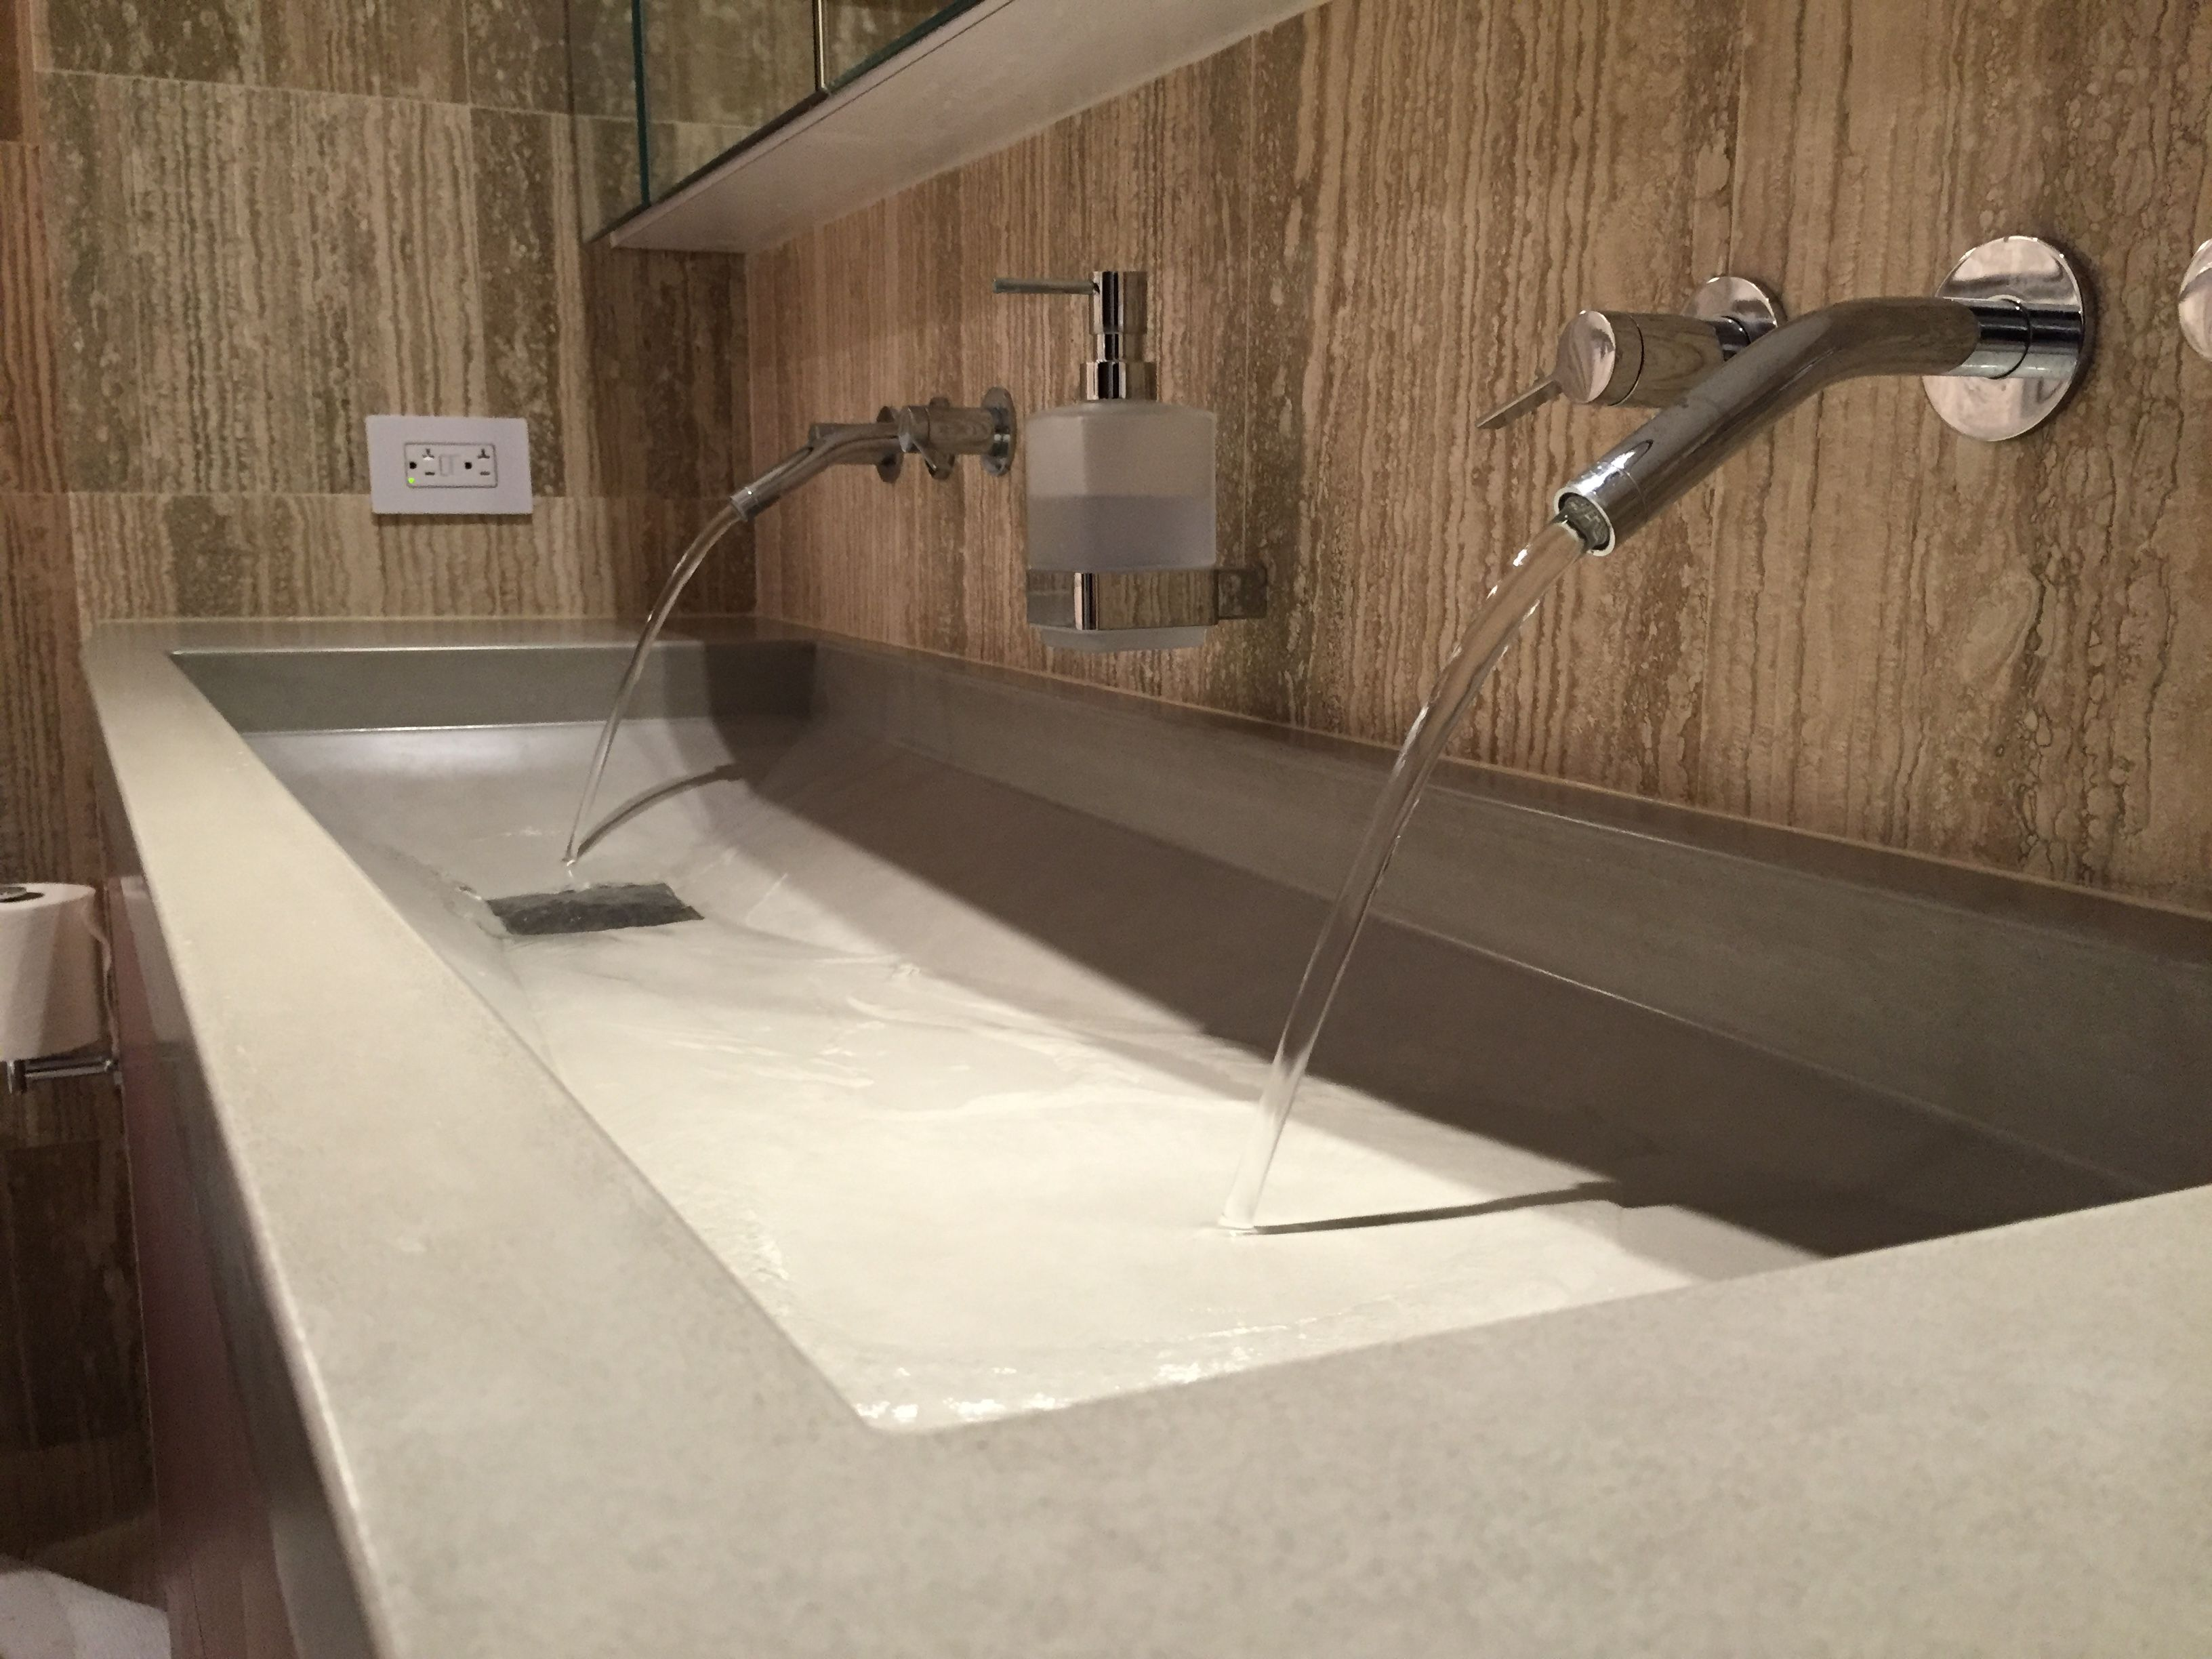 custom concrete sink by Trueform Concrete with wall mount faucets